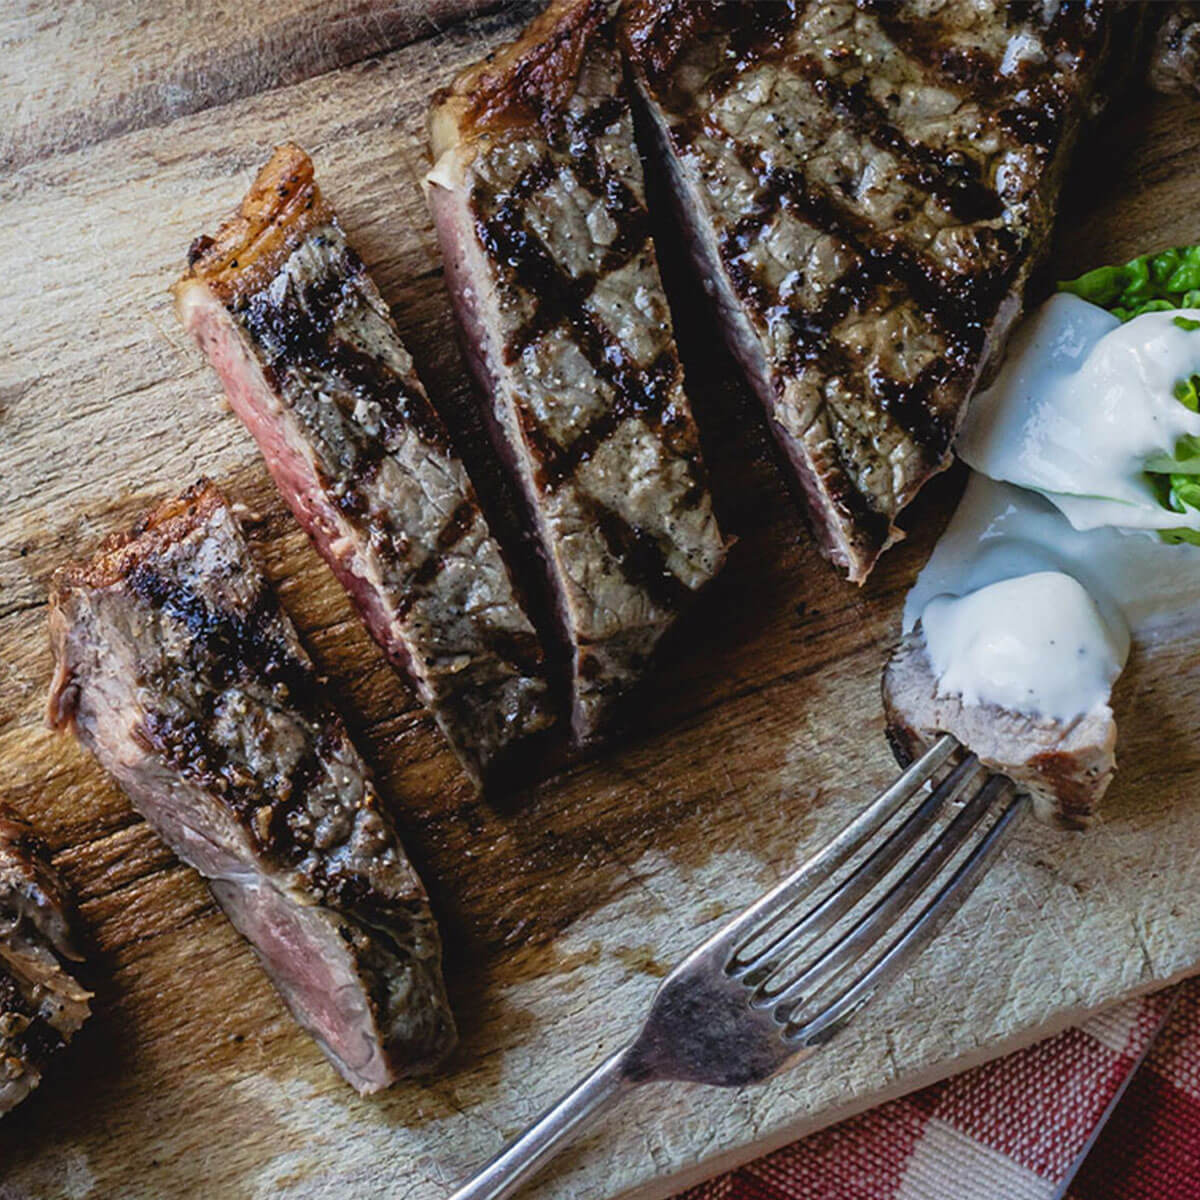 The Ultimate Steak Tasting Experience